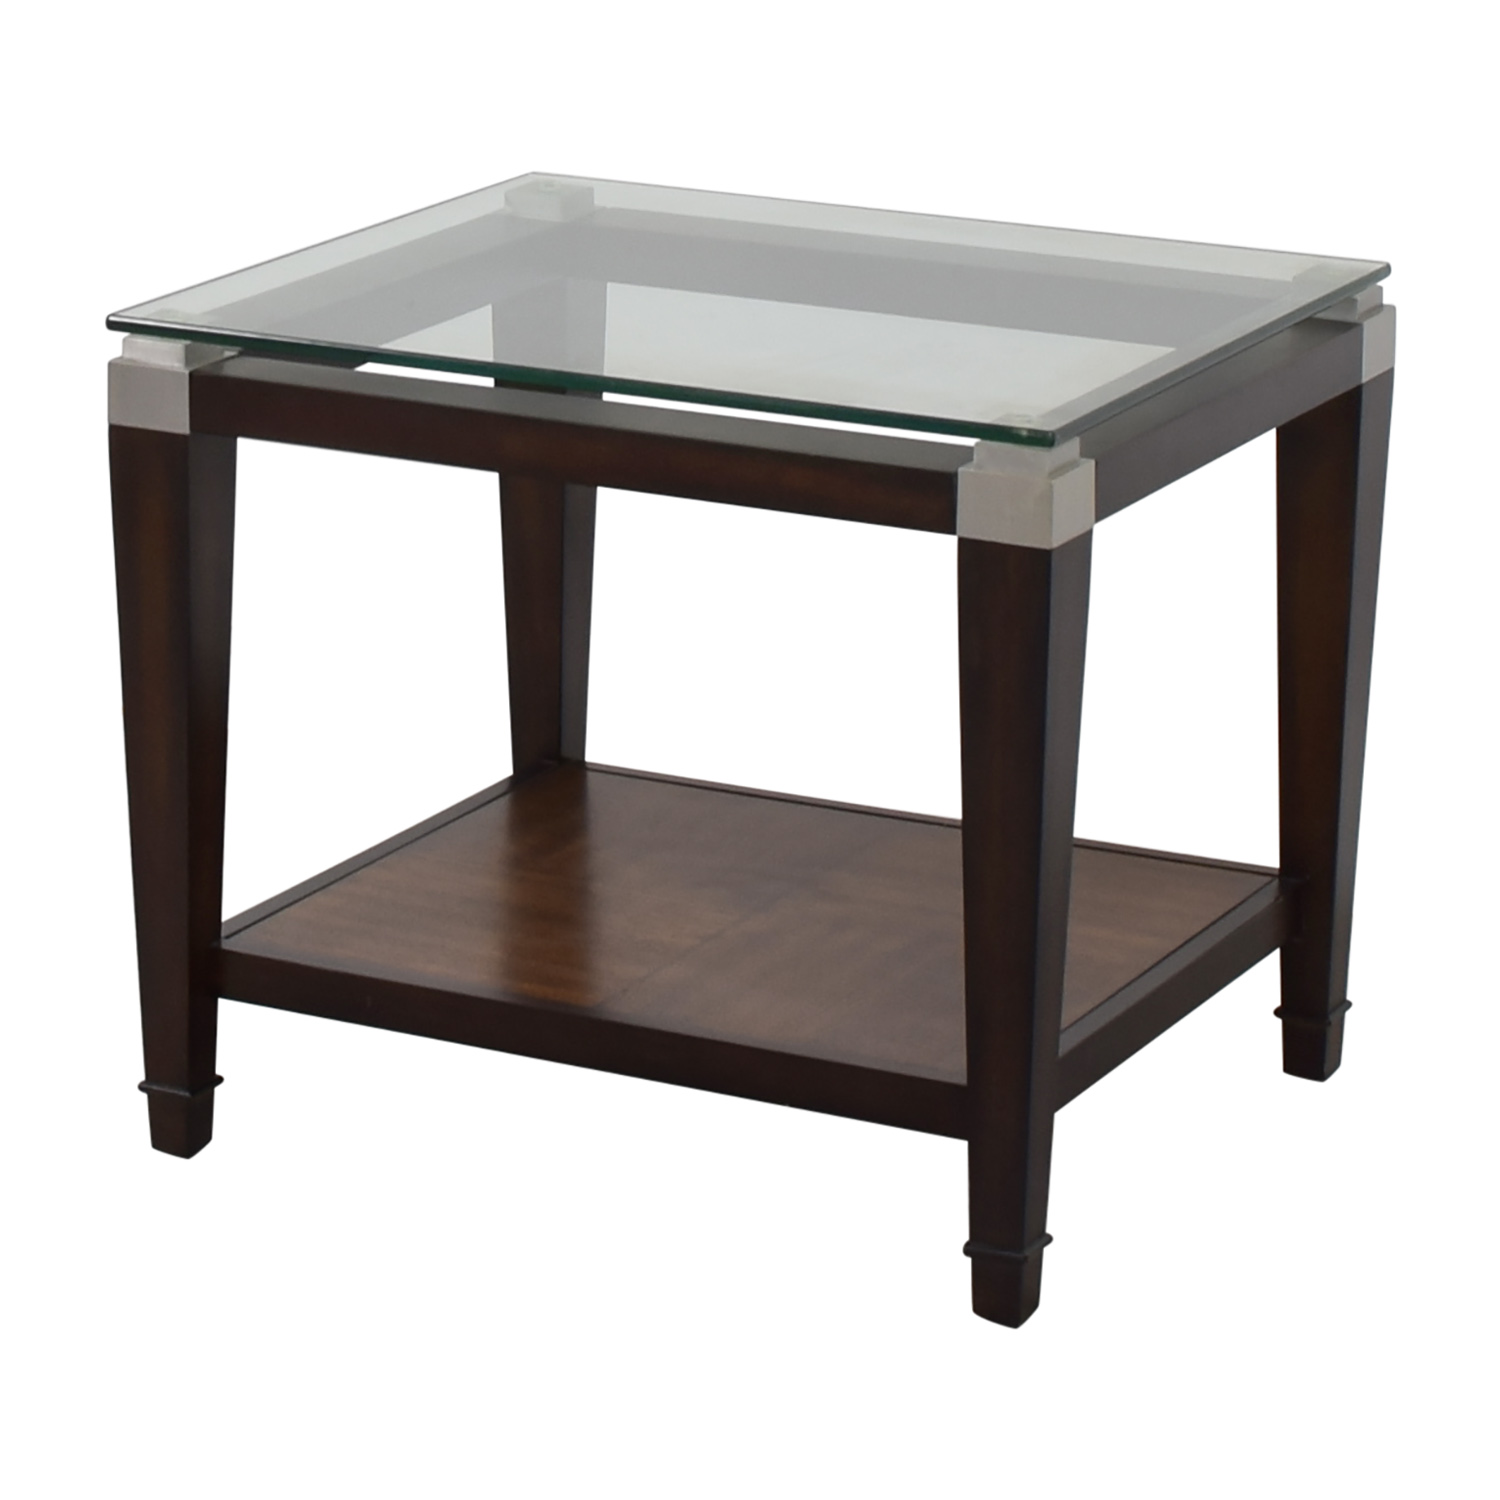 buy Raymour and Flanigan Raymour & Flanigan Wood and Glass Lamp Table online